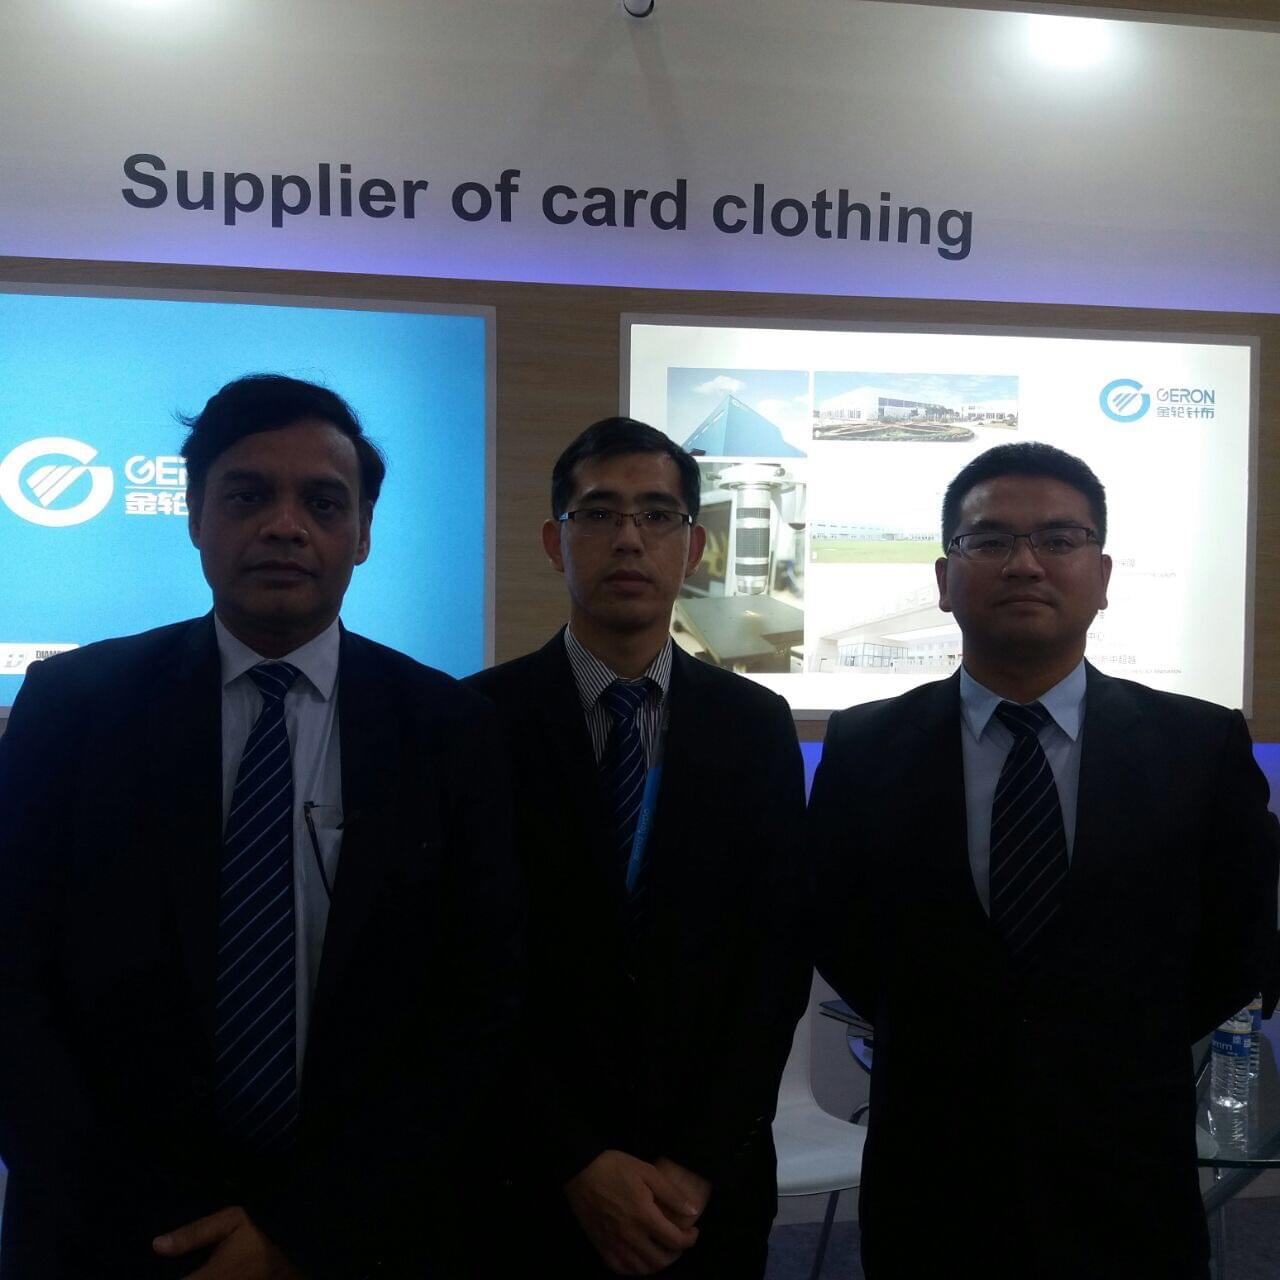 Geron, enjoys 65% market share in China and 22% in India